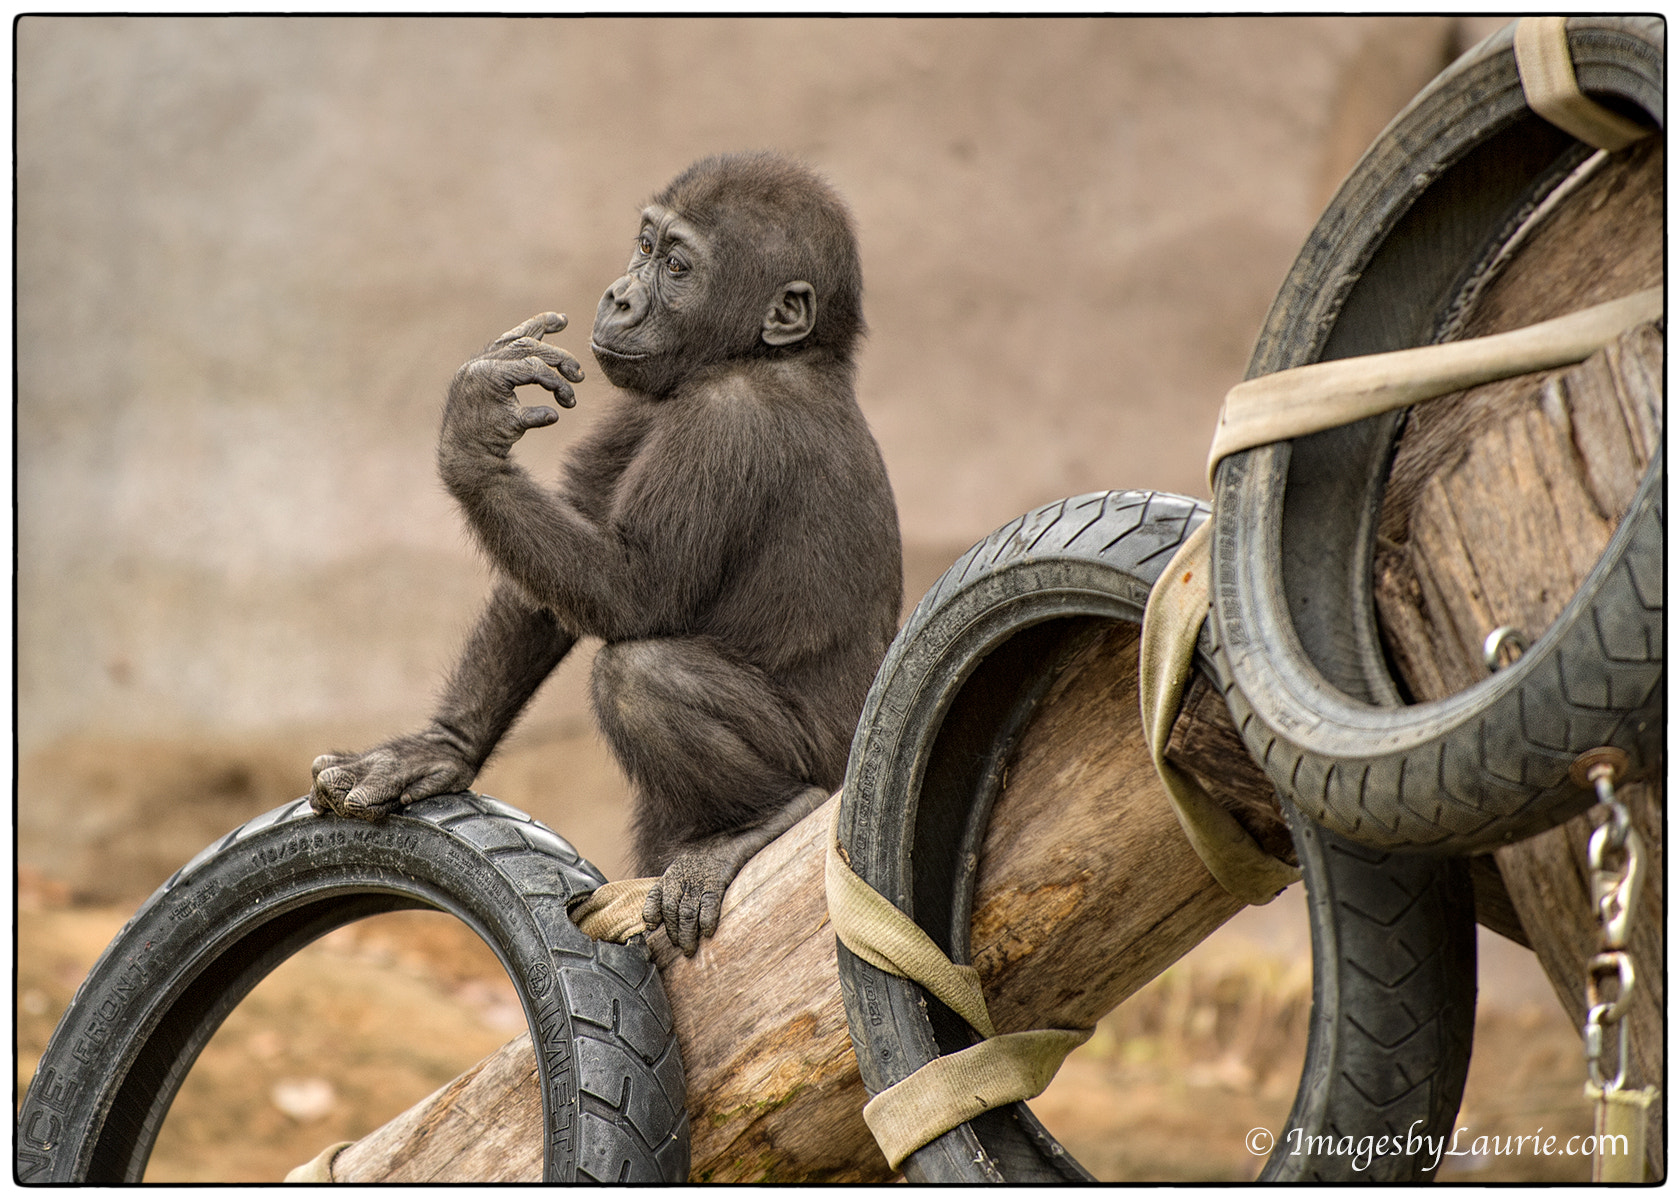 Photograph Counting Tires by Laurie Rubin on 500px